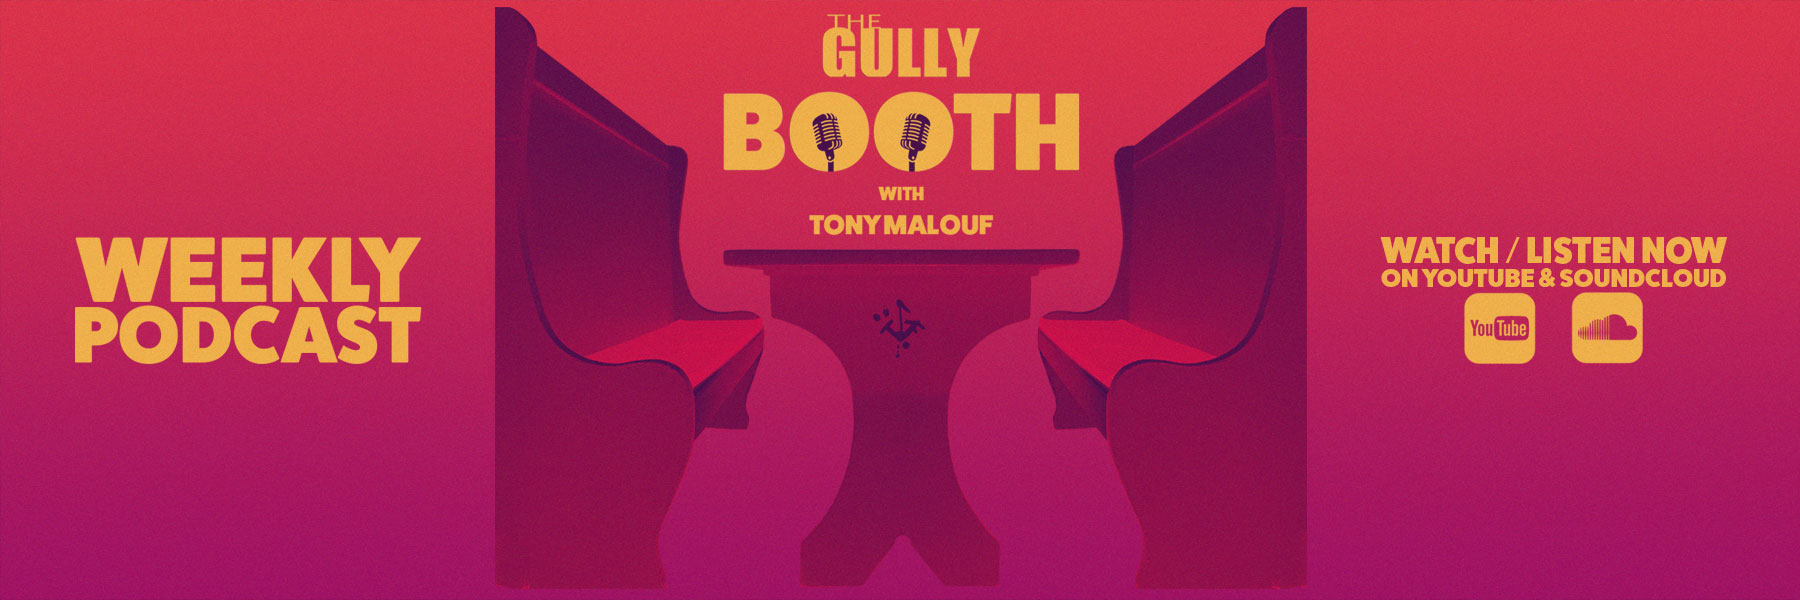 GullyBooth_Banner